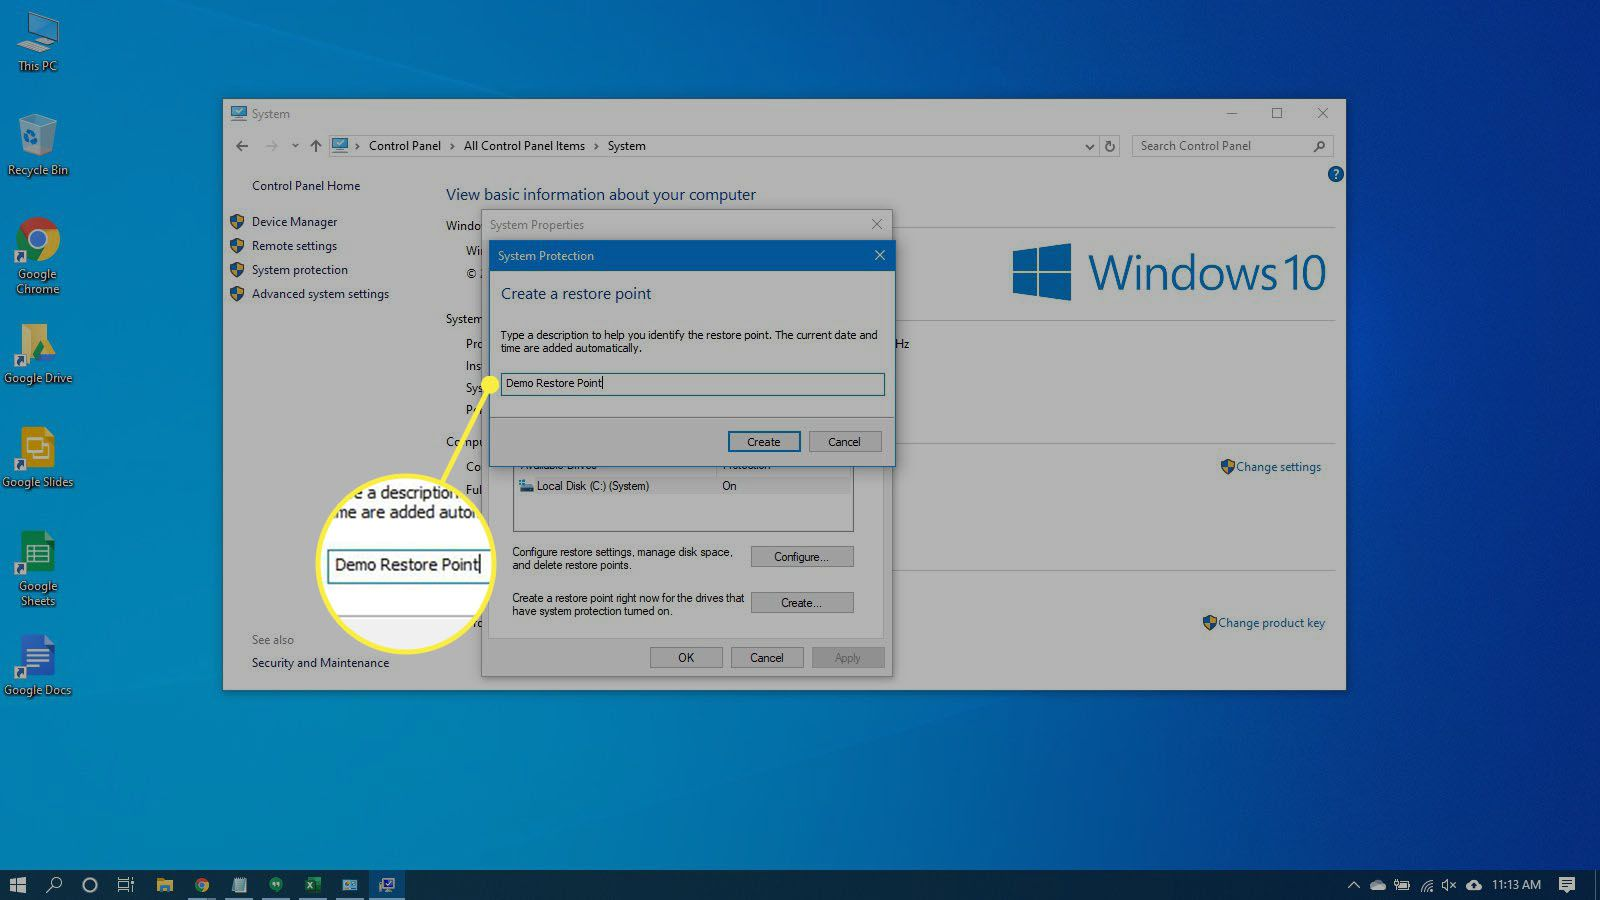 Naming the restore point in Windows 10.